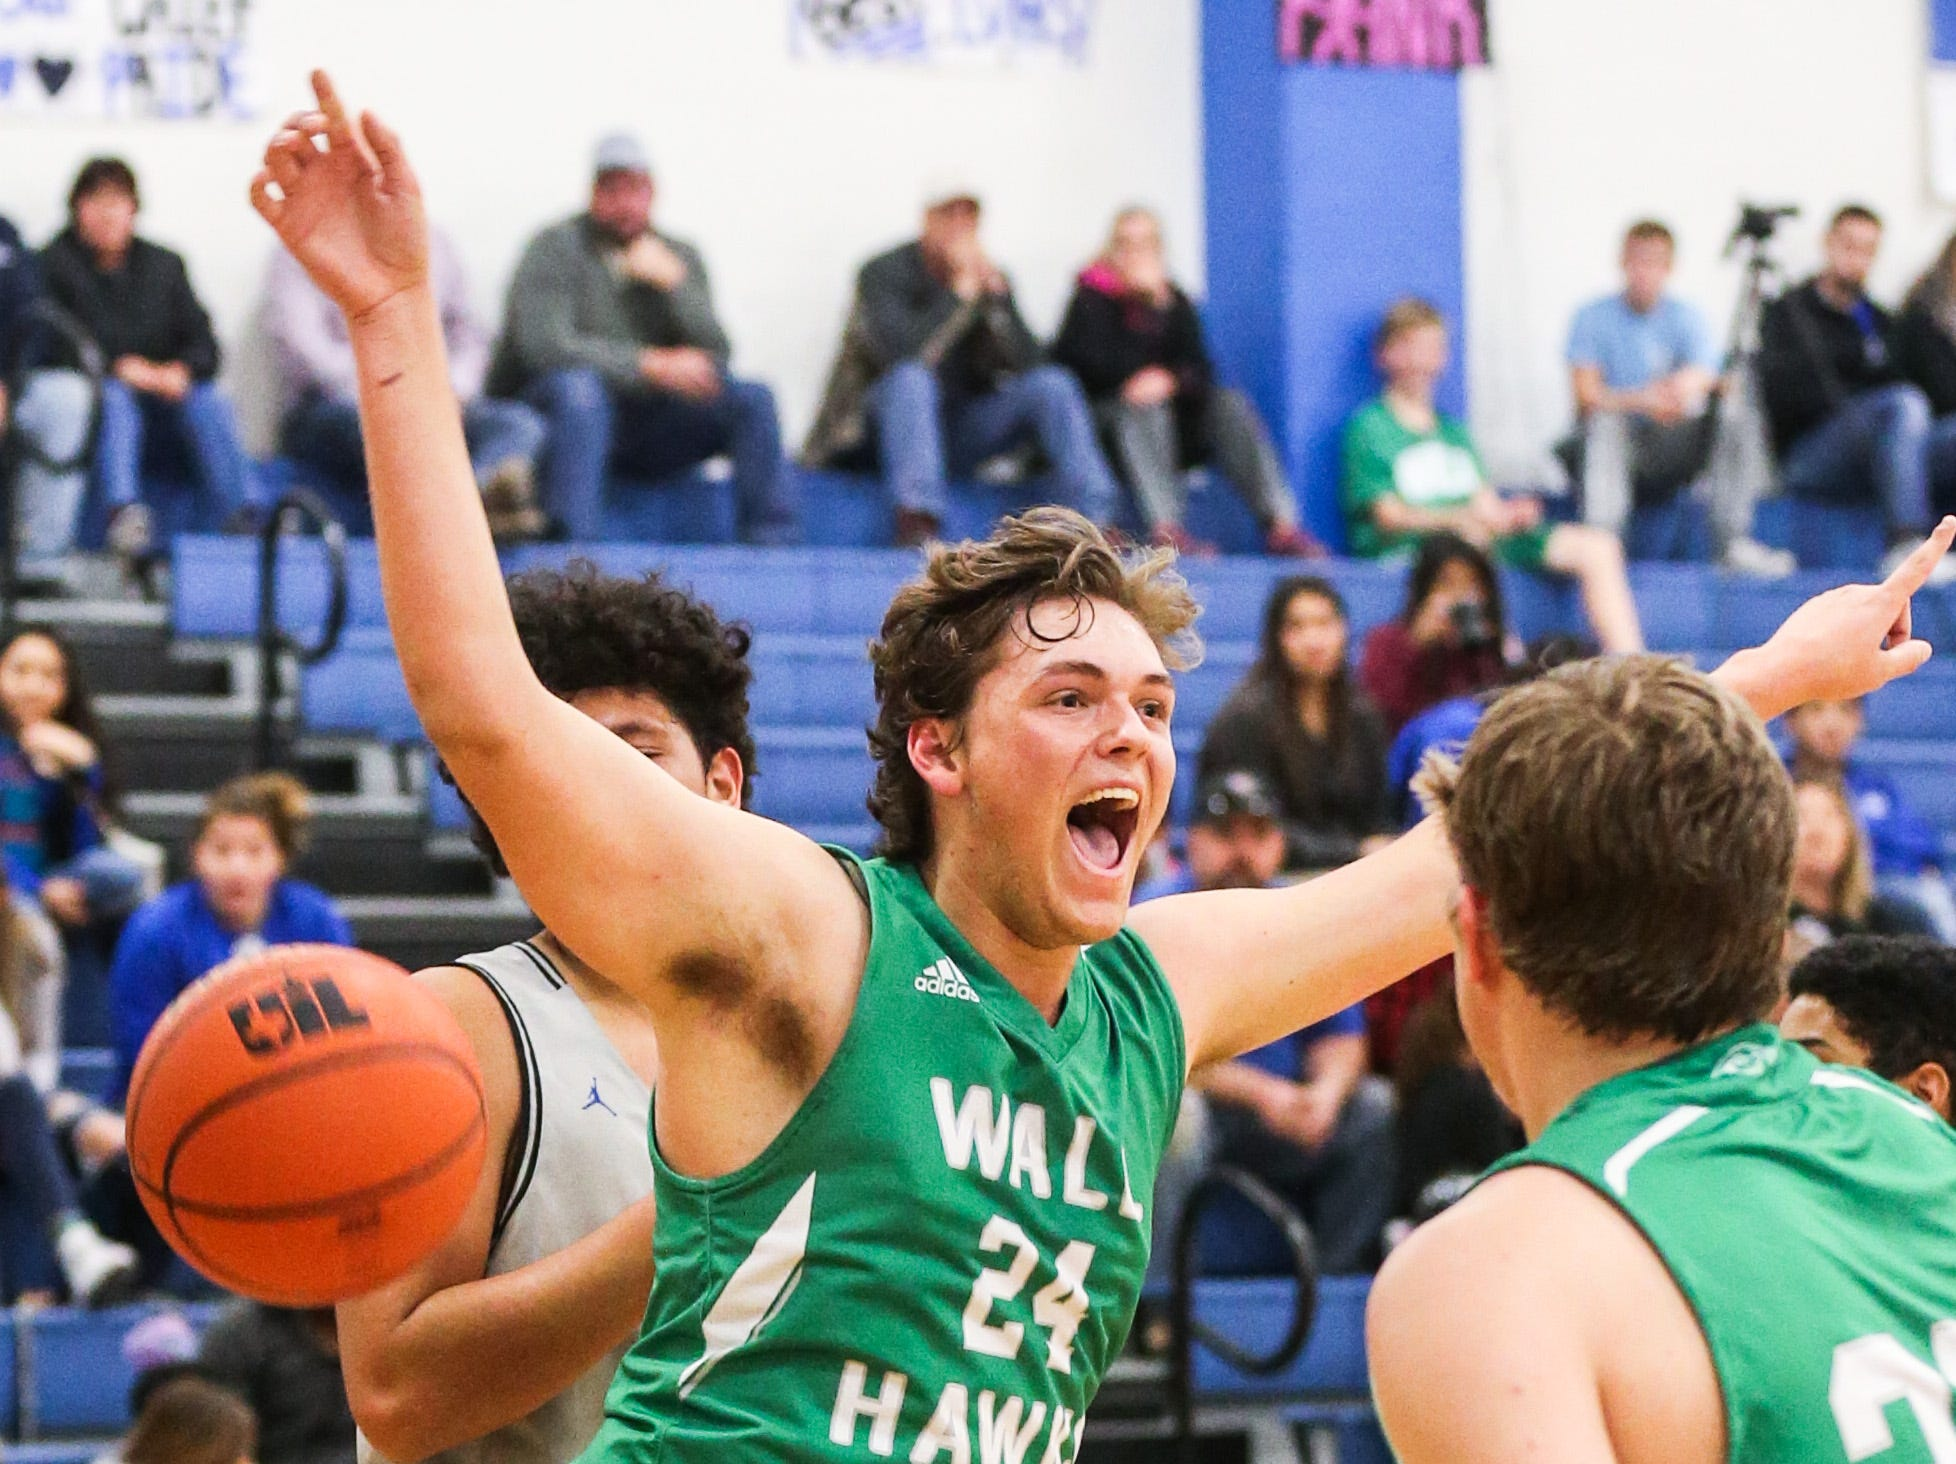 Wall's Colton Chitsey cheers after a shot against Lake View Friday, Dec. 14, 2018, at Lake View High School.